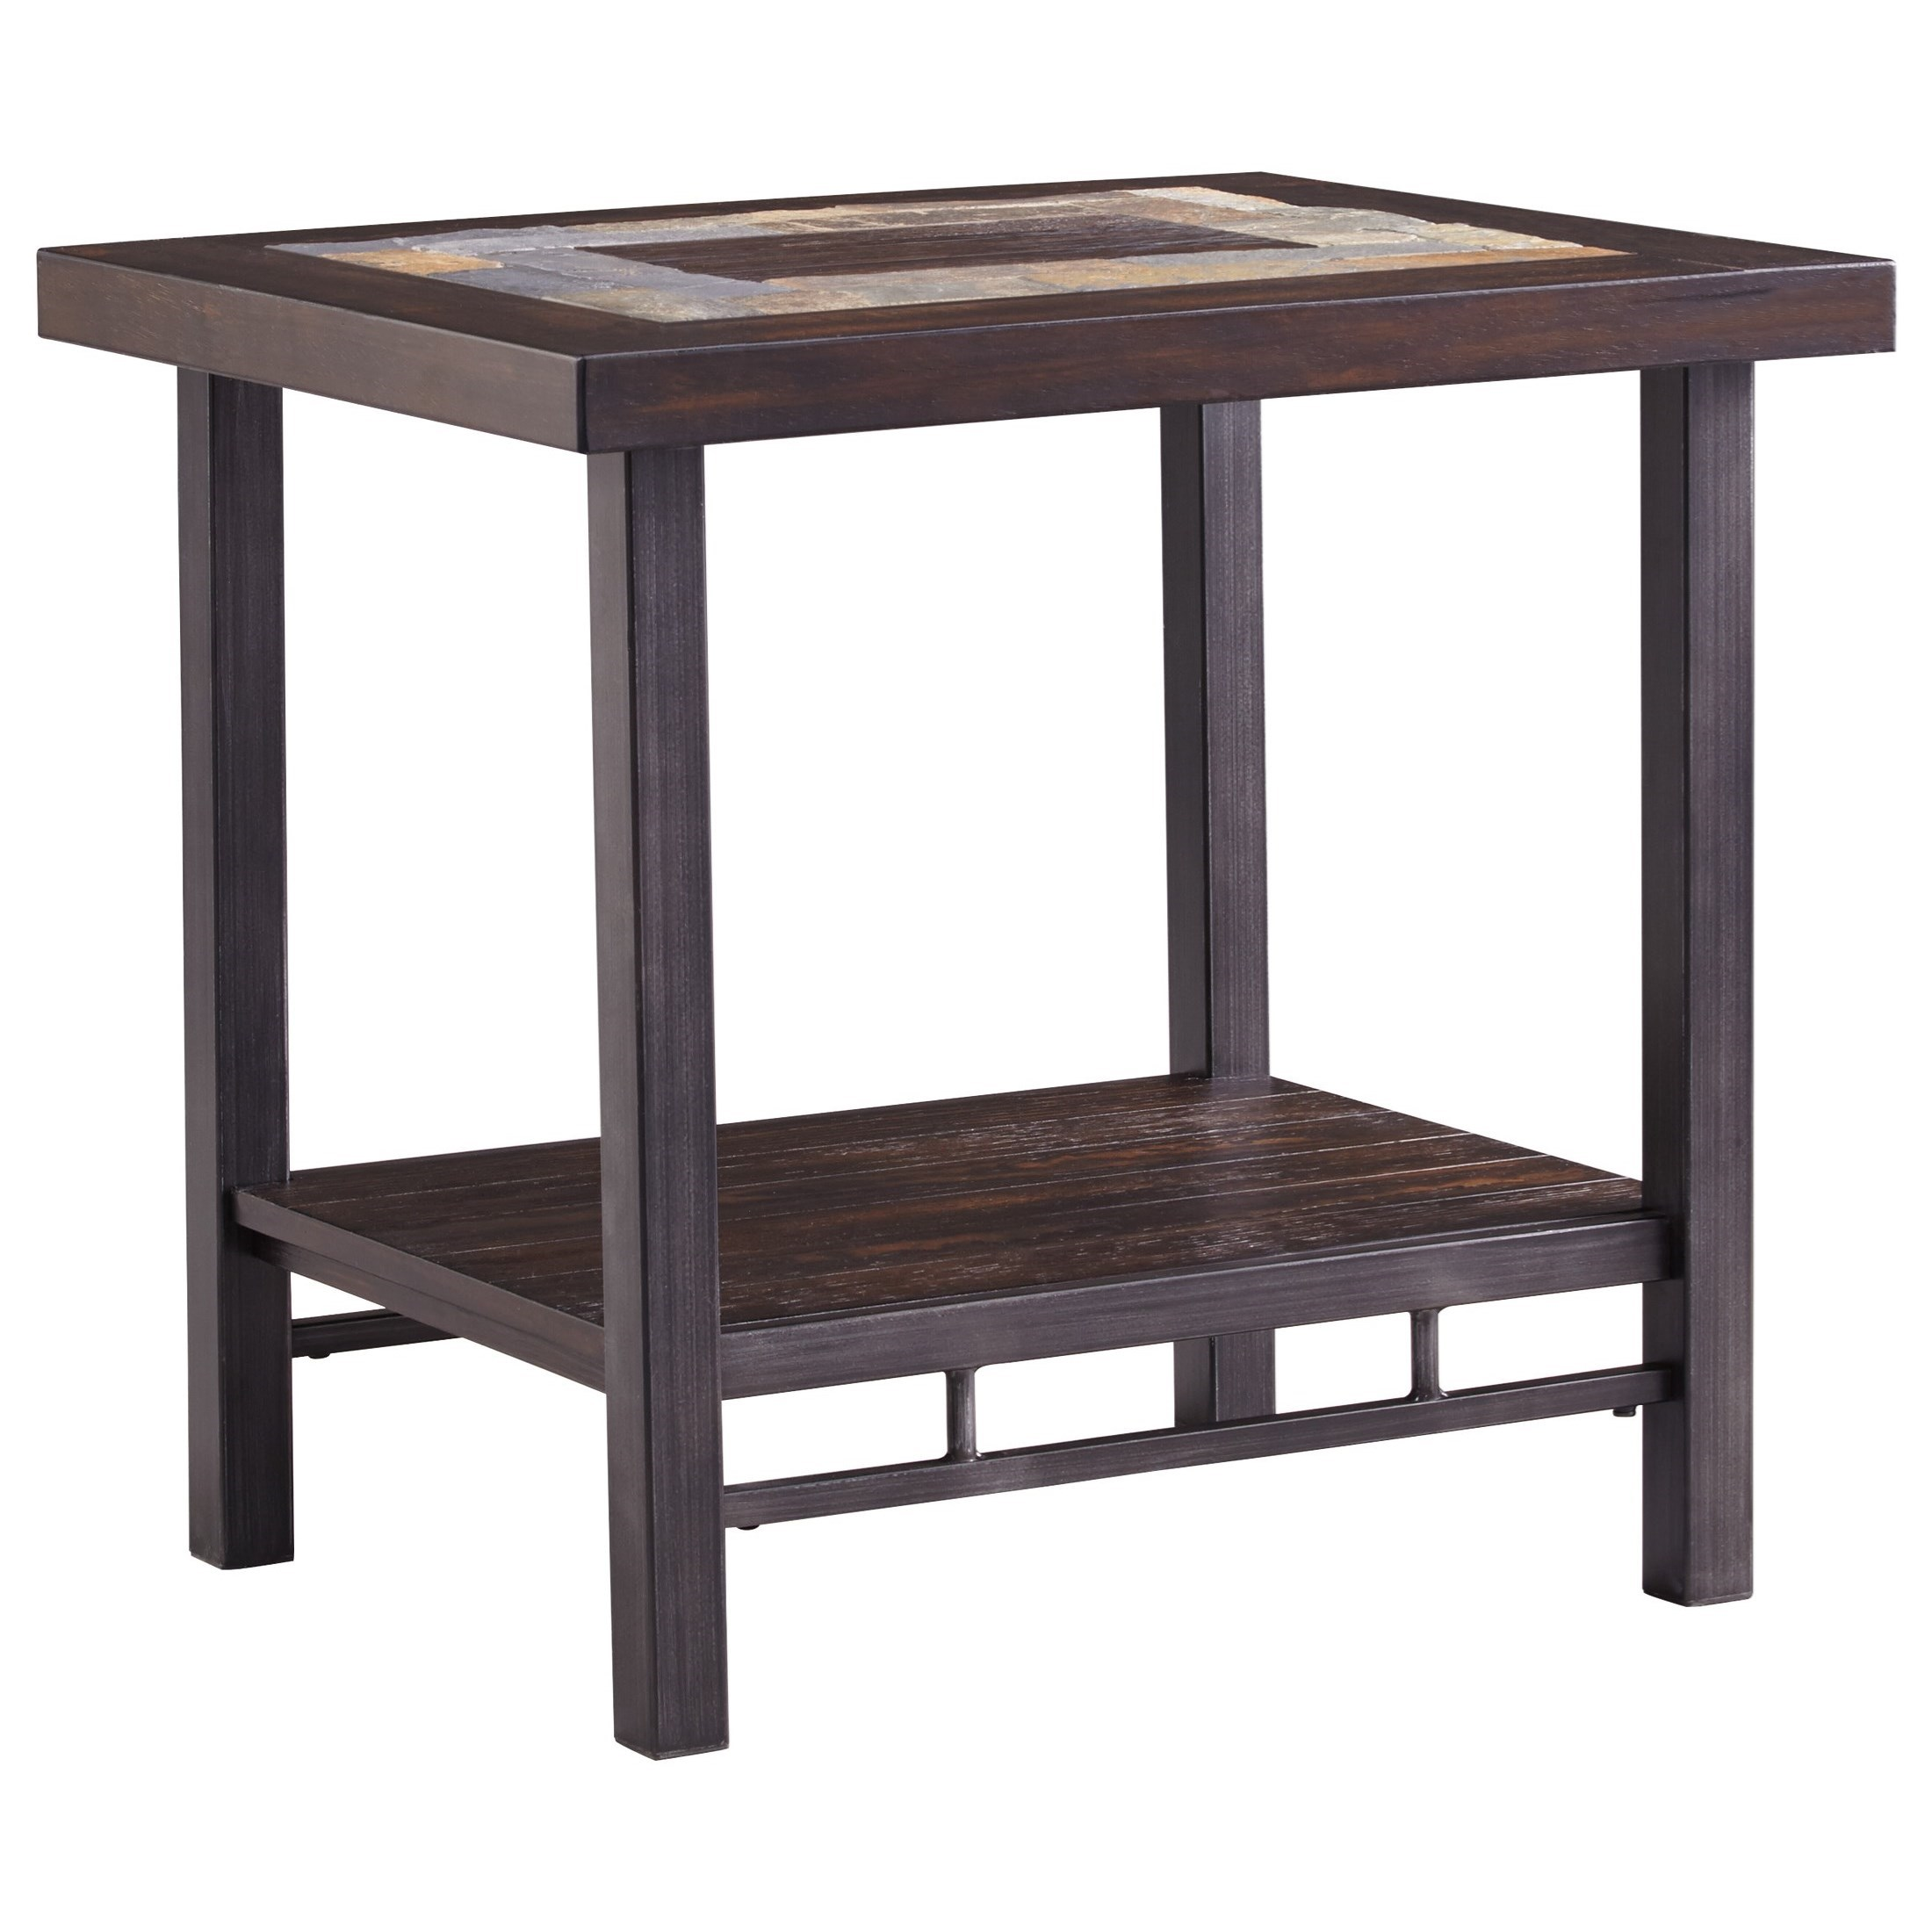 Signature Design By Ashley Gallivan T053 3 Rectangular End Table With Slate Tile Inlay Del Sol